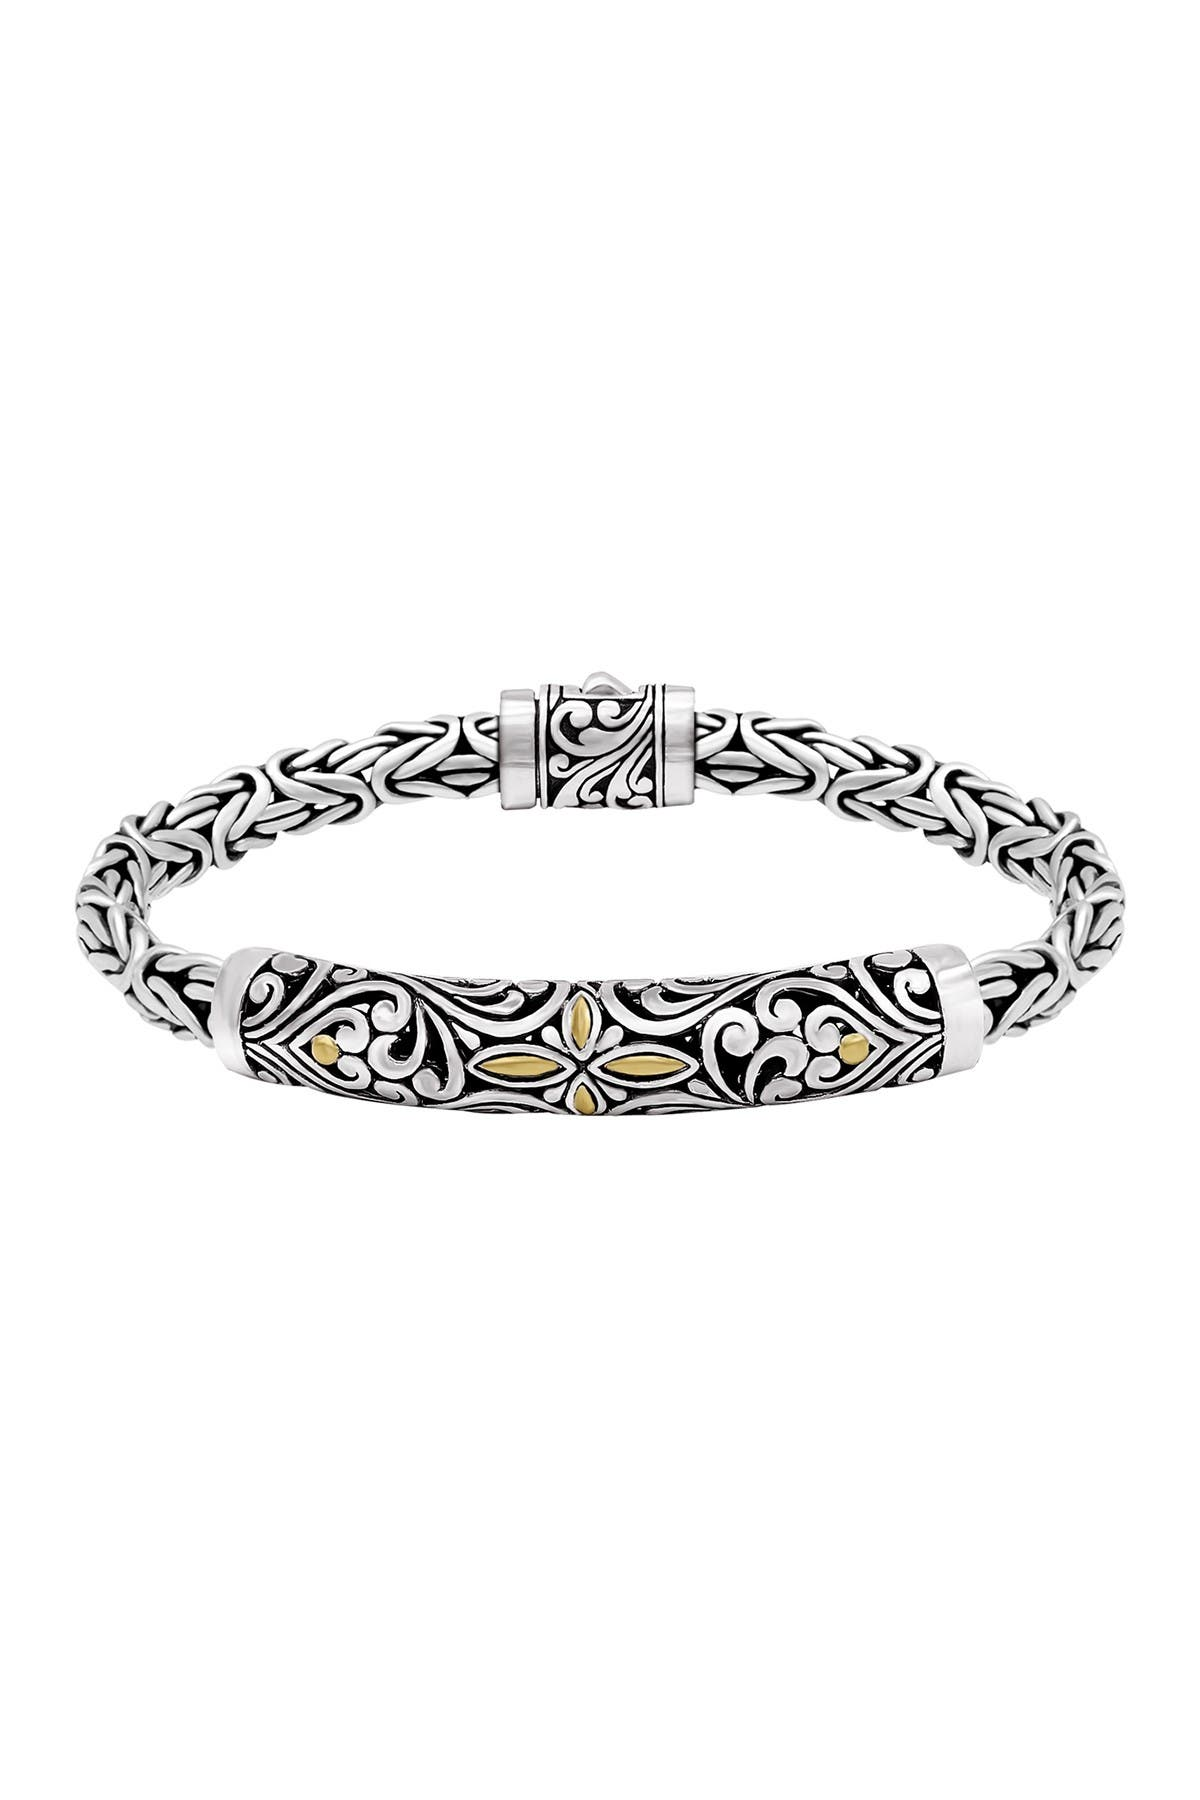 Image of DEVATA Bali Heritage Classic Bracelet with Byzantine Chain in Sterling Silver with 18K Yellow Gold for Men